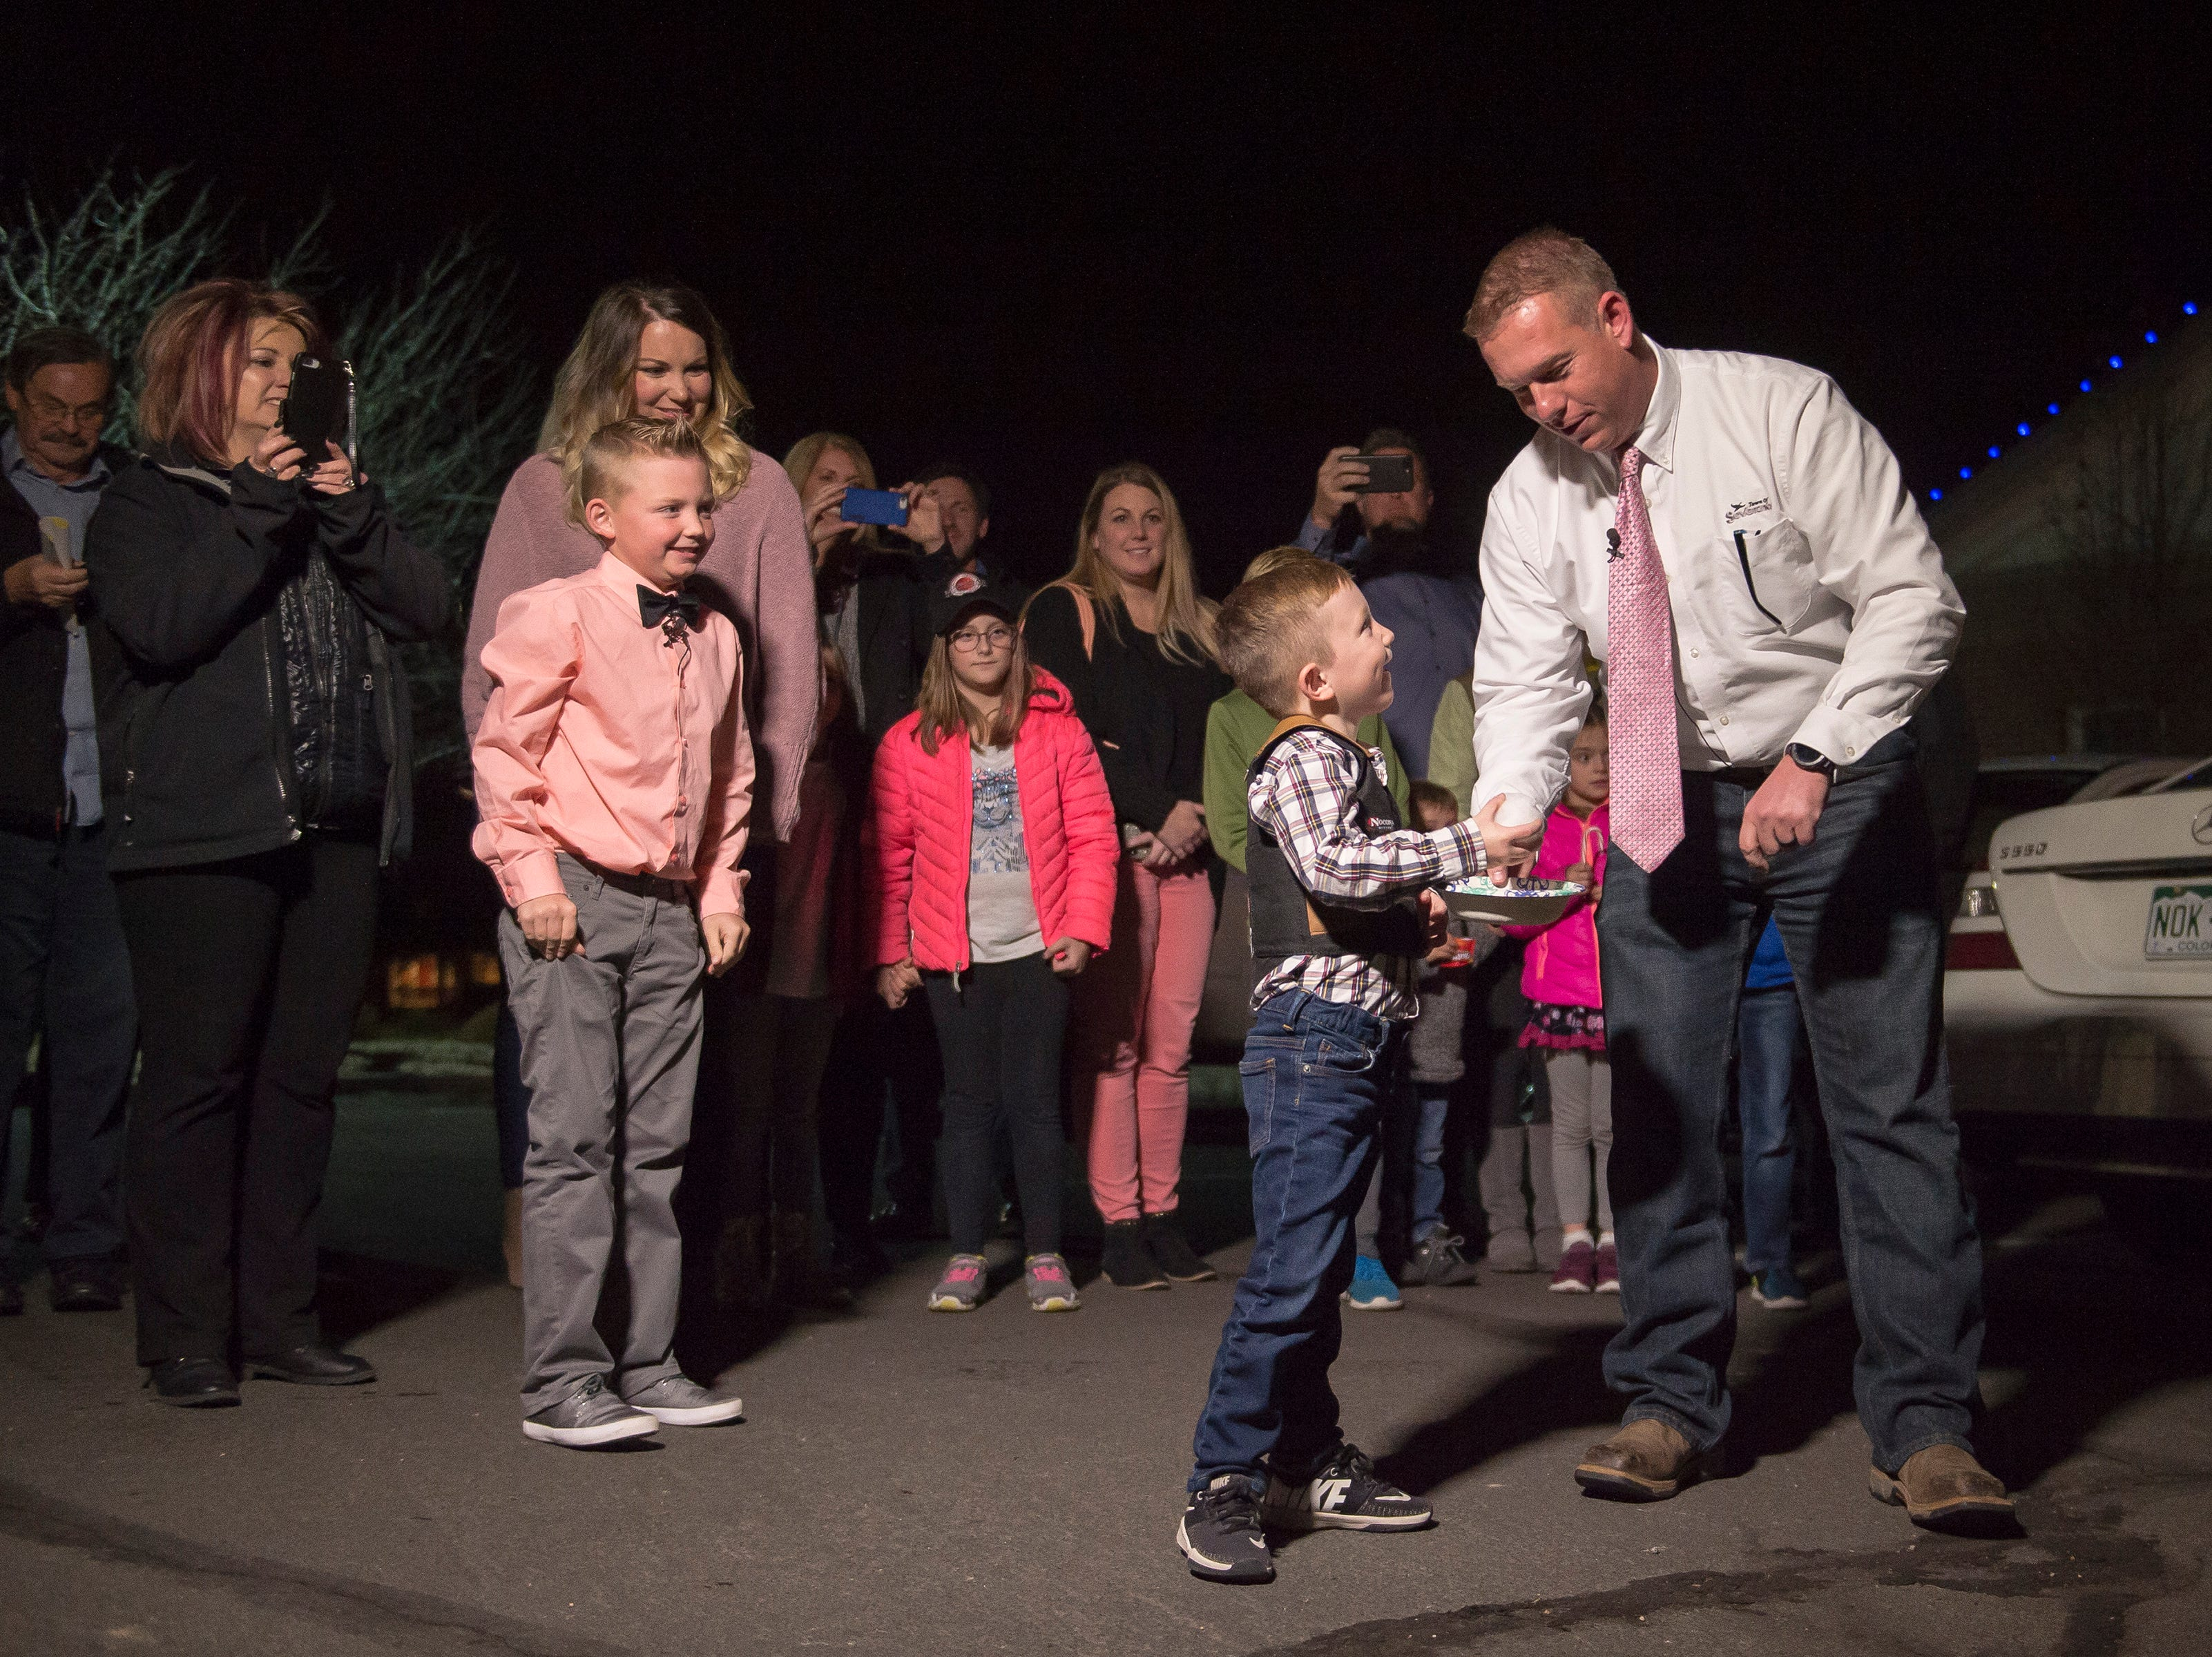 Range View Elementary School third grader Dane Best, left, looks on as his younger brother Dax is handed a second snowball, to be thrown legally, by Mayor Donald McLeod in the parking lot of the Town Hall after Dane presenting his argument to the town board trustees to change a law in Severance that bans snowball fights on Monday, Dec. 3, 2018, at the Town Hall in Severance, Colo. The board voted unanimously to approve the law change.